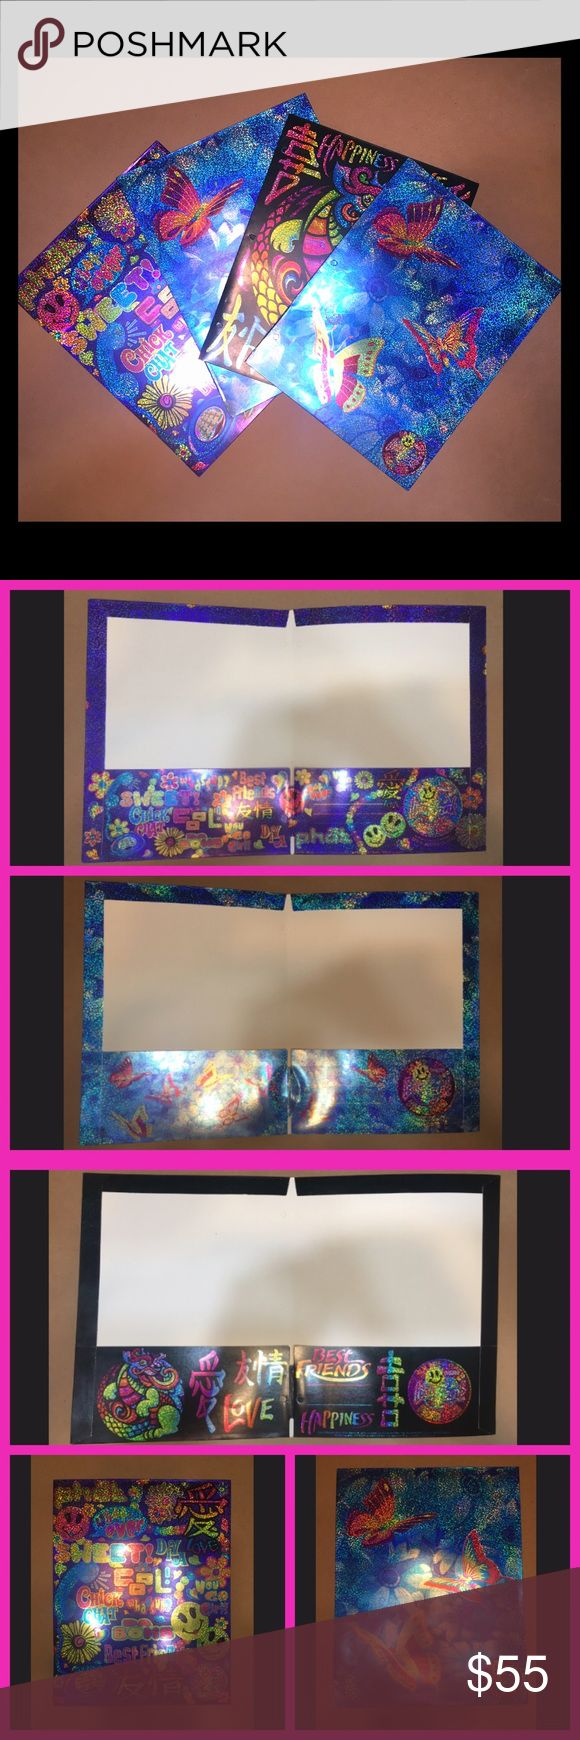 🌈RARE🌈 Vintage Lisa Frank Glitter Bundle Set of four, 90's Lisa Frank folders. These have never been used and still have the holes in tact. These prints are very rare and are no longer in production. Accessories